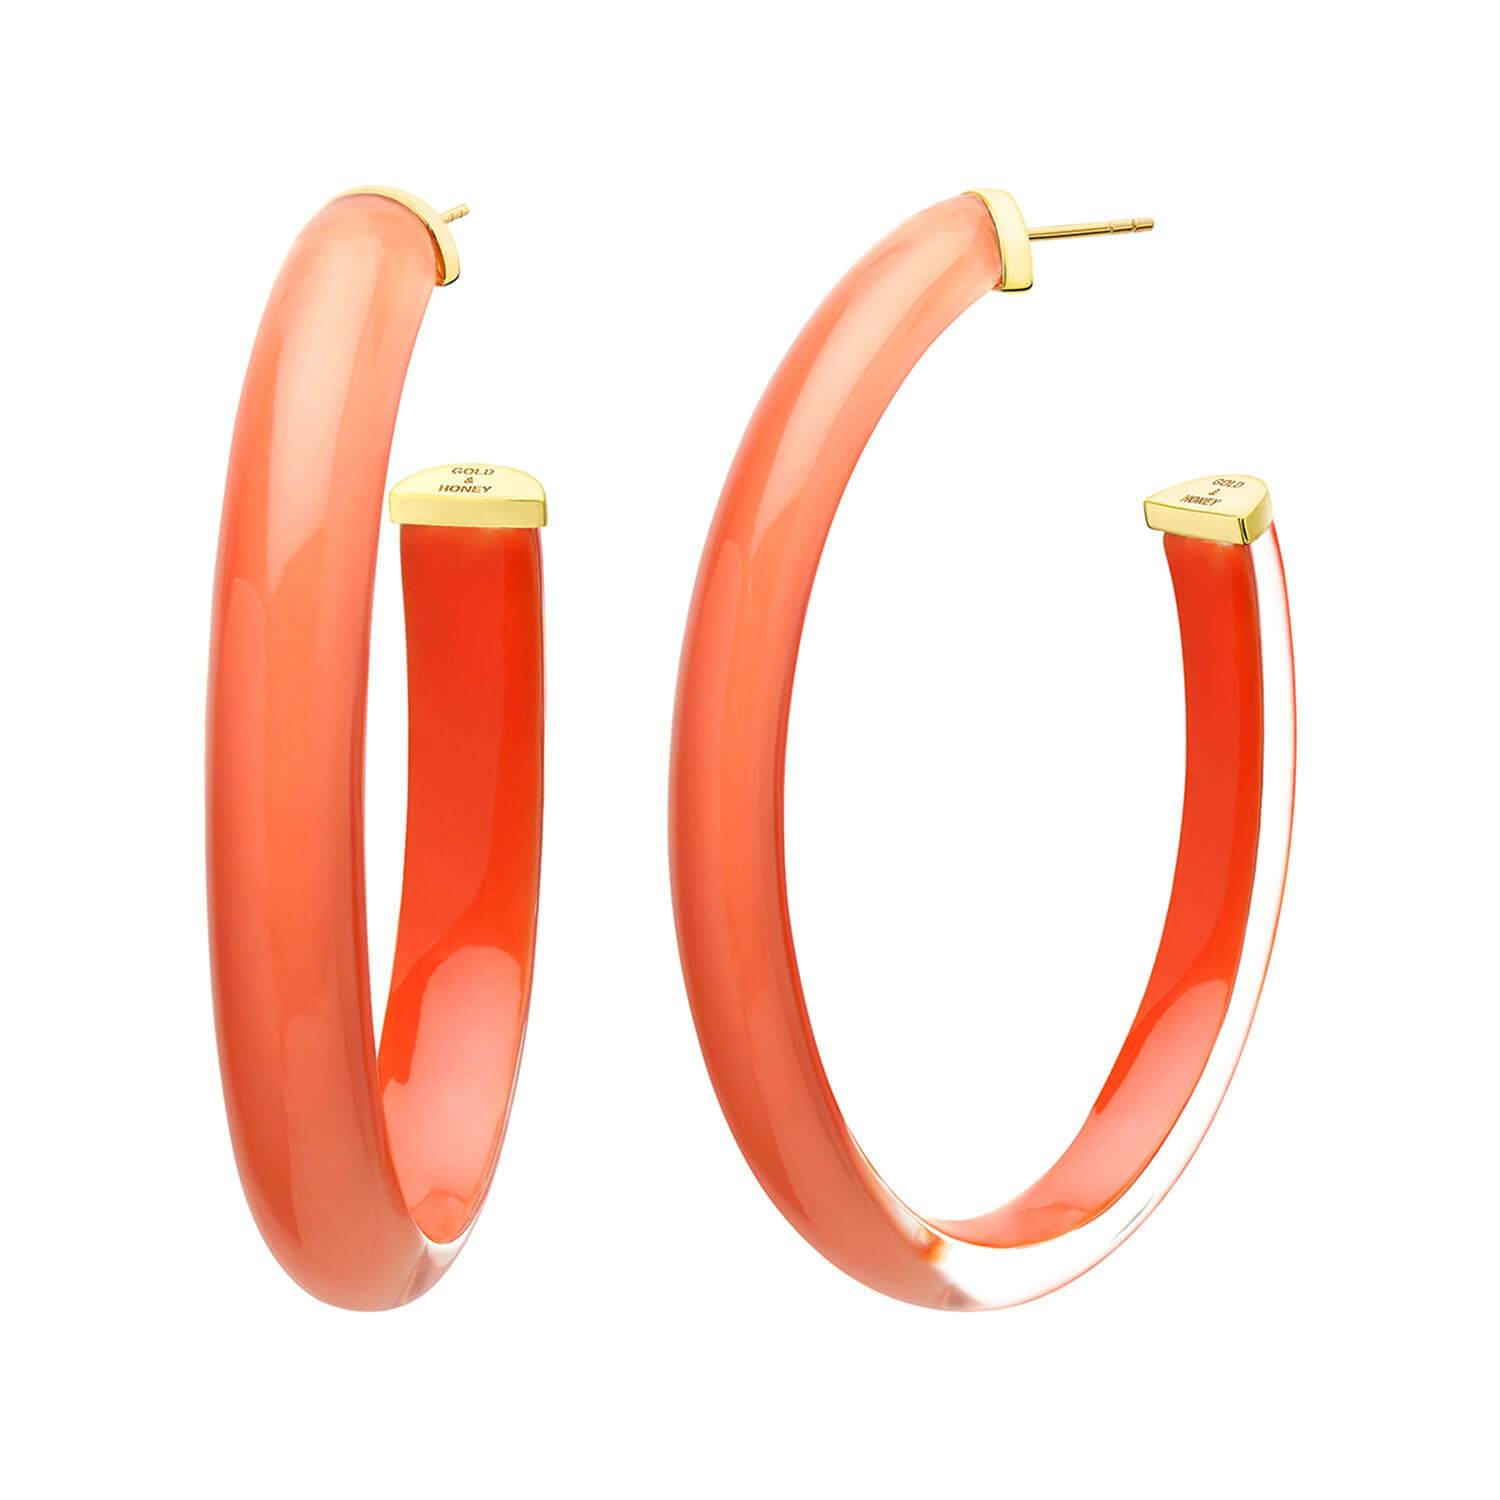 XL Illusion Lucite Hoops in LIVING CORAL